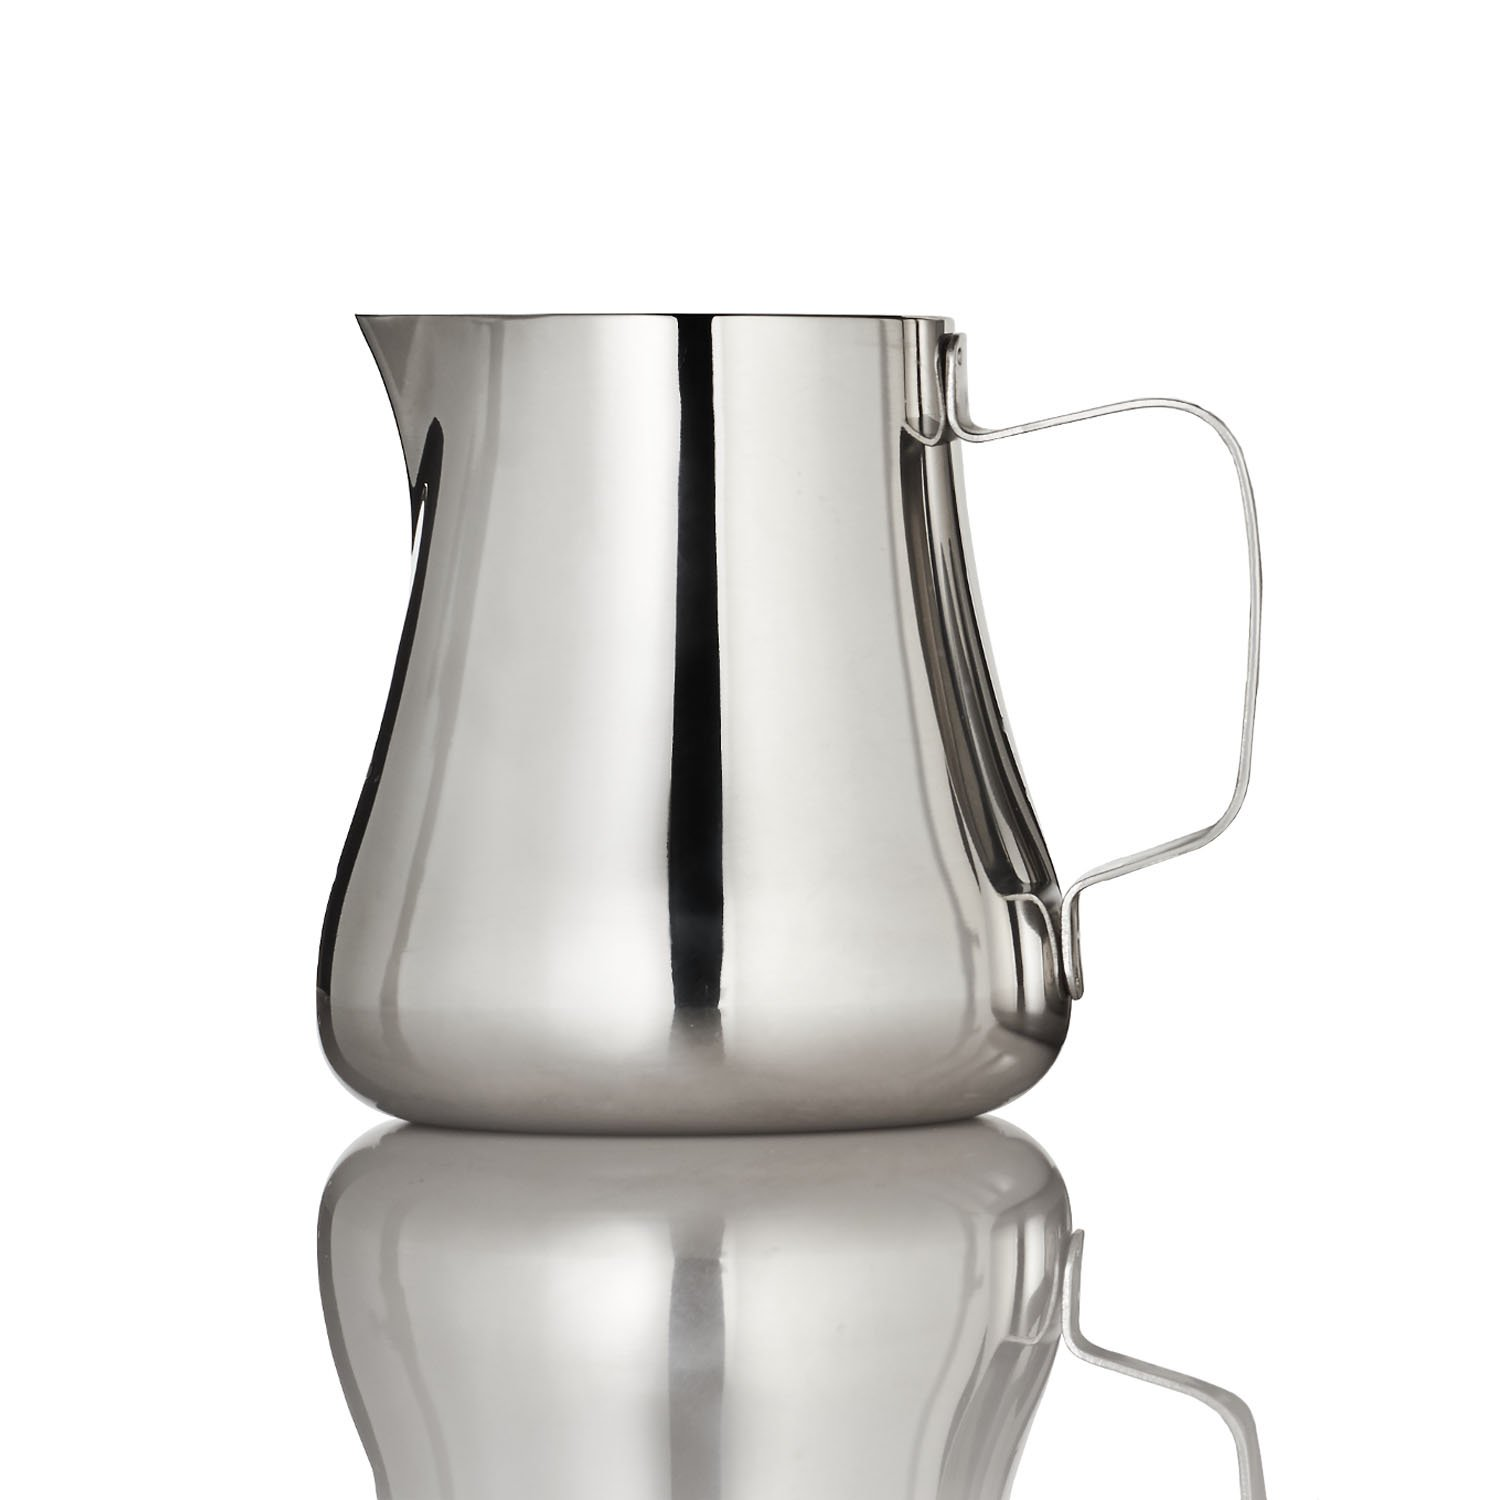 12 oz Espro 2012 Troid Frothing Pitcher Stainless Steel